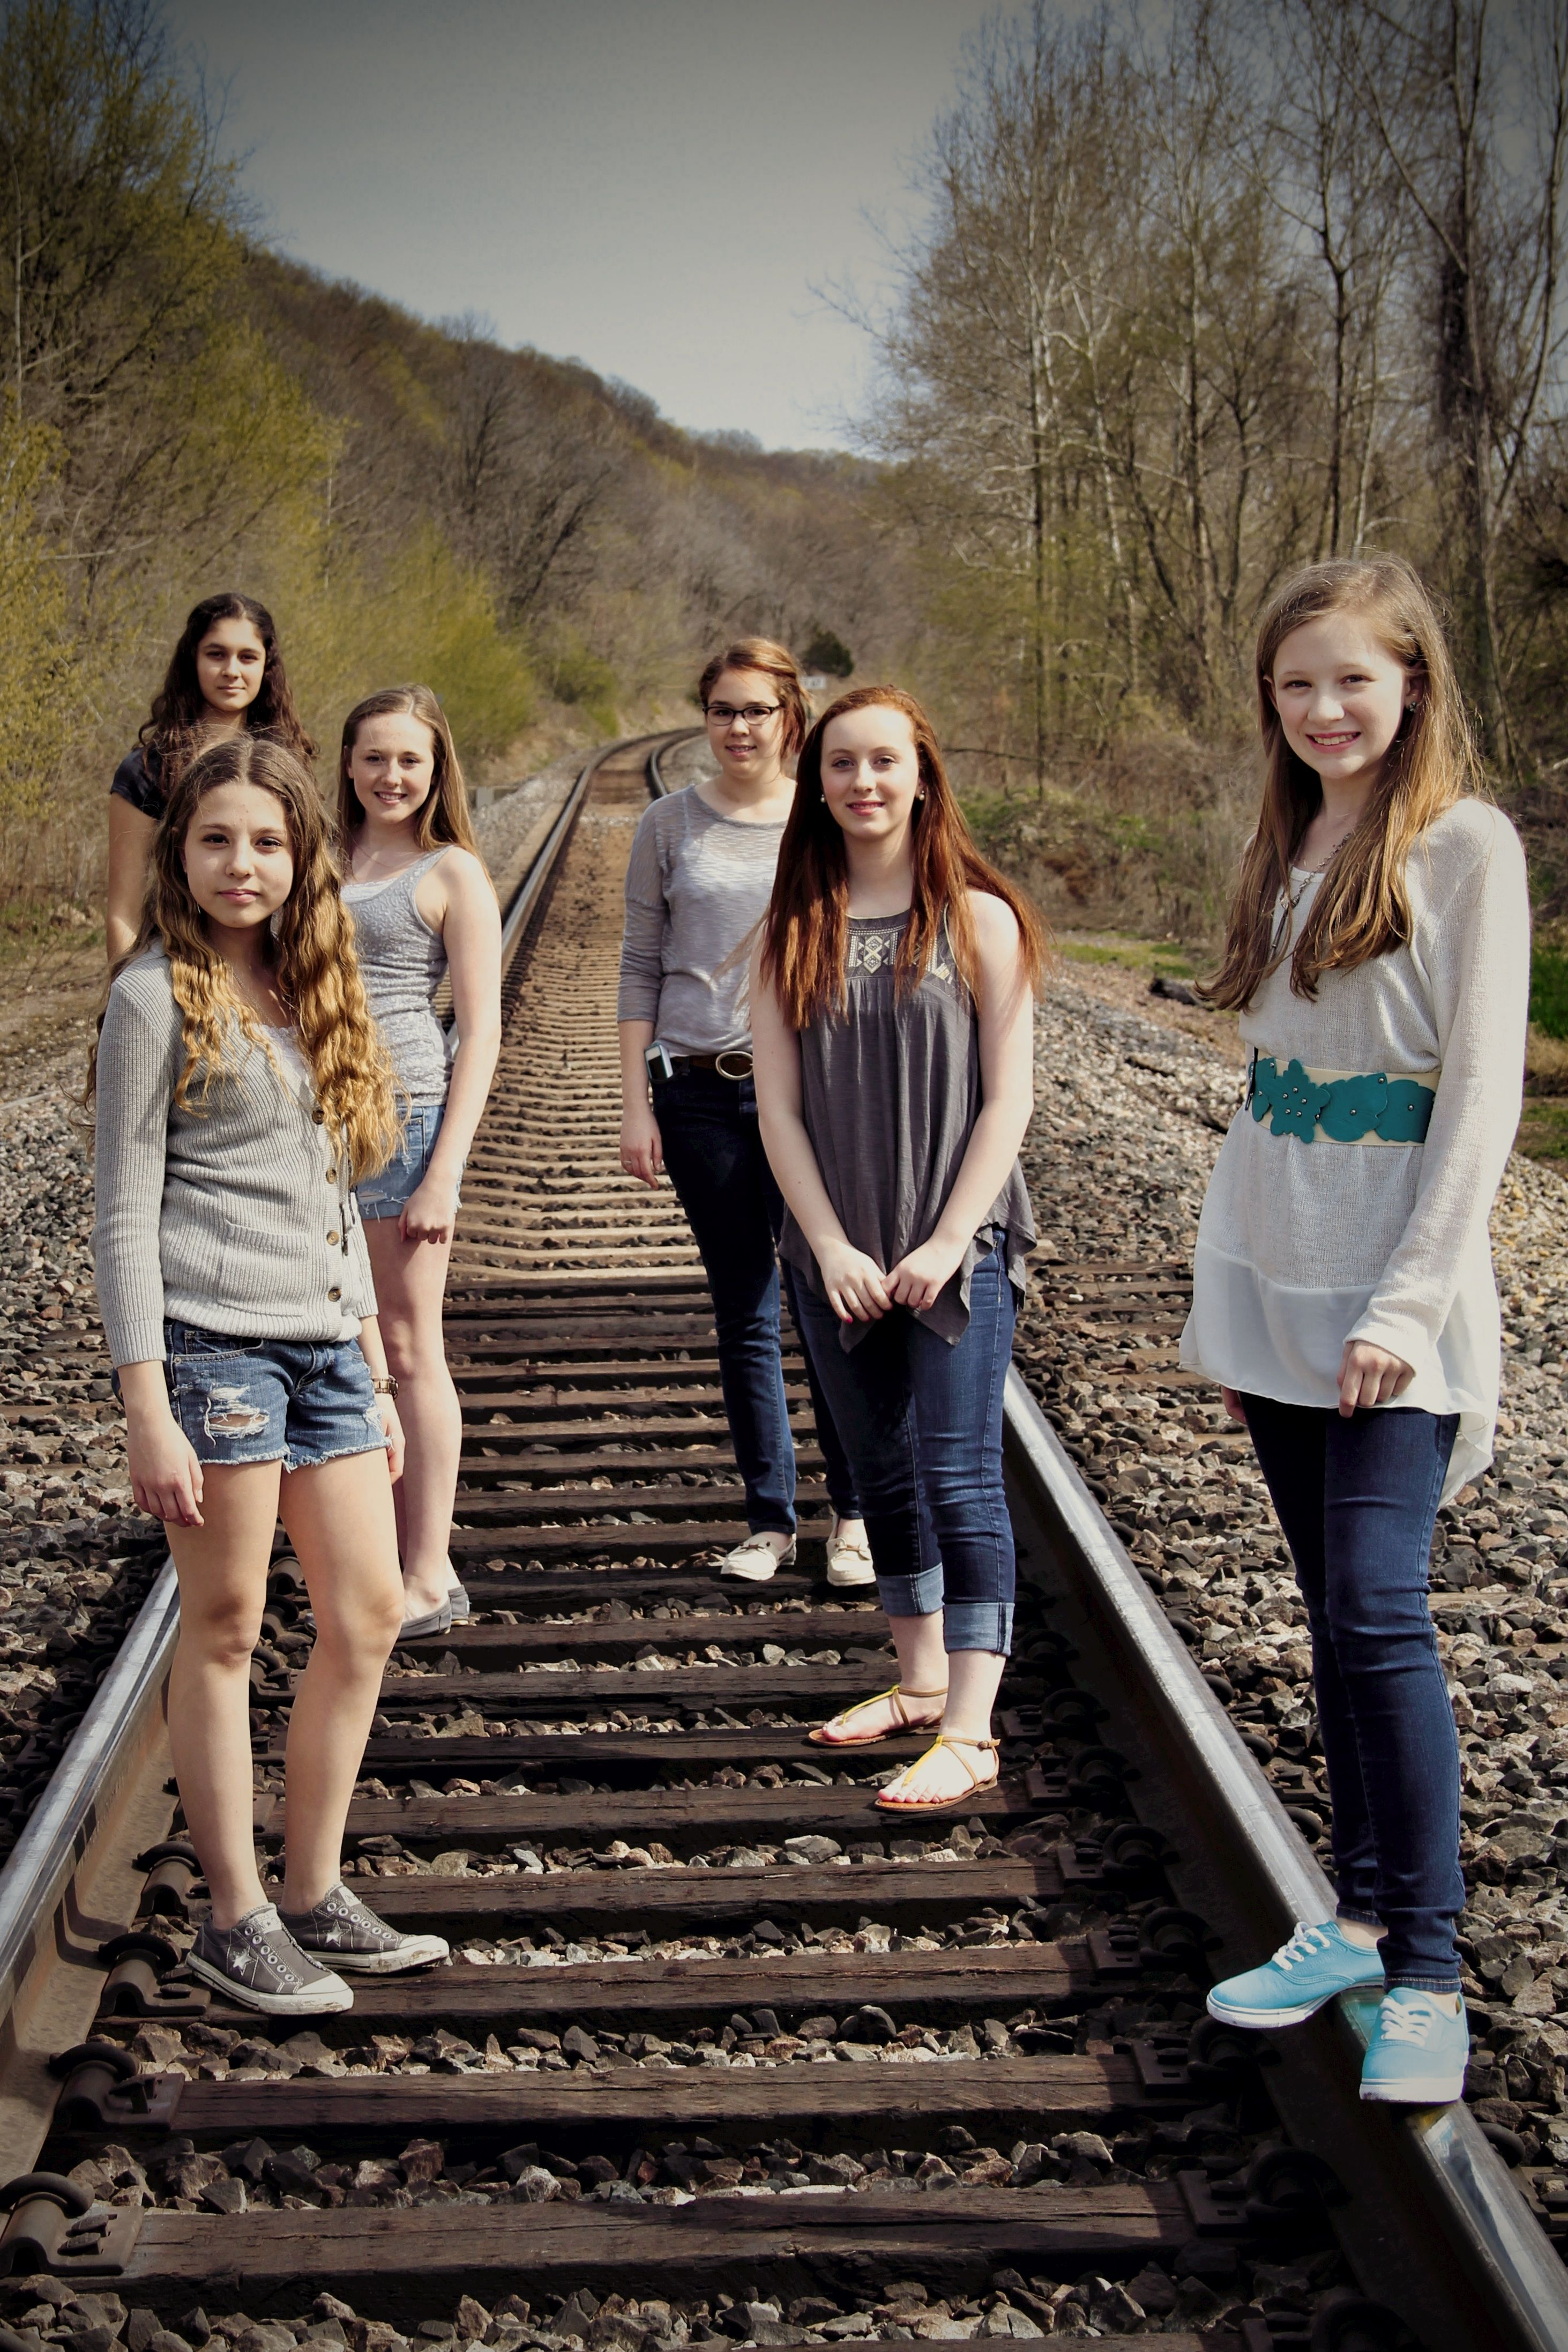 Bff photos train tracks 2 best friends photo shoot for Photoshoot ideas for groups